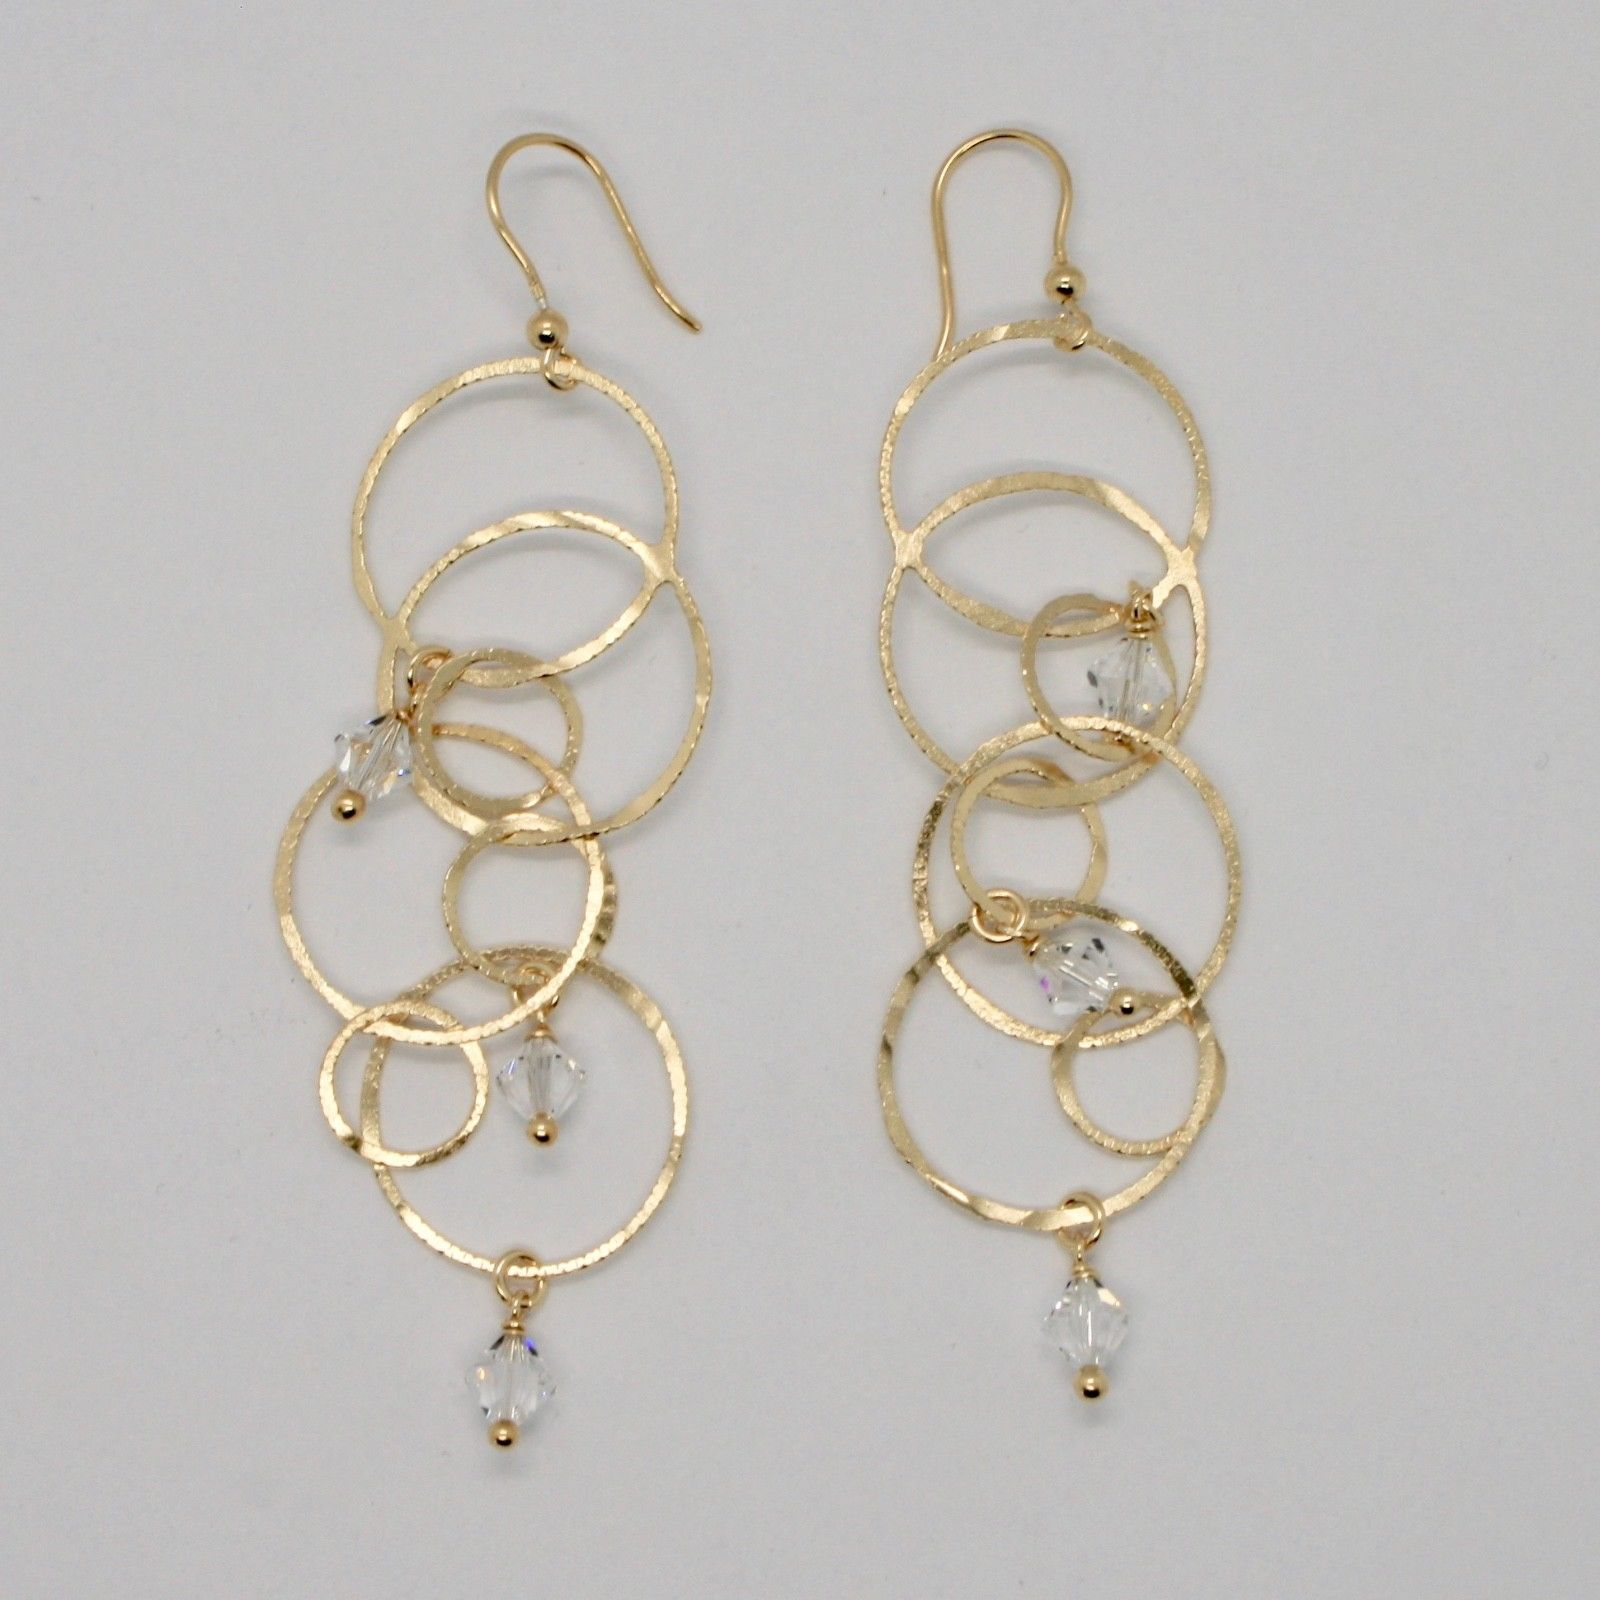 925 STERLING SILVER GOLD PL PENDANT EARRINGS WITH CIRCLES BY MARIA IELPO ITALY